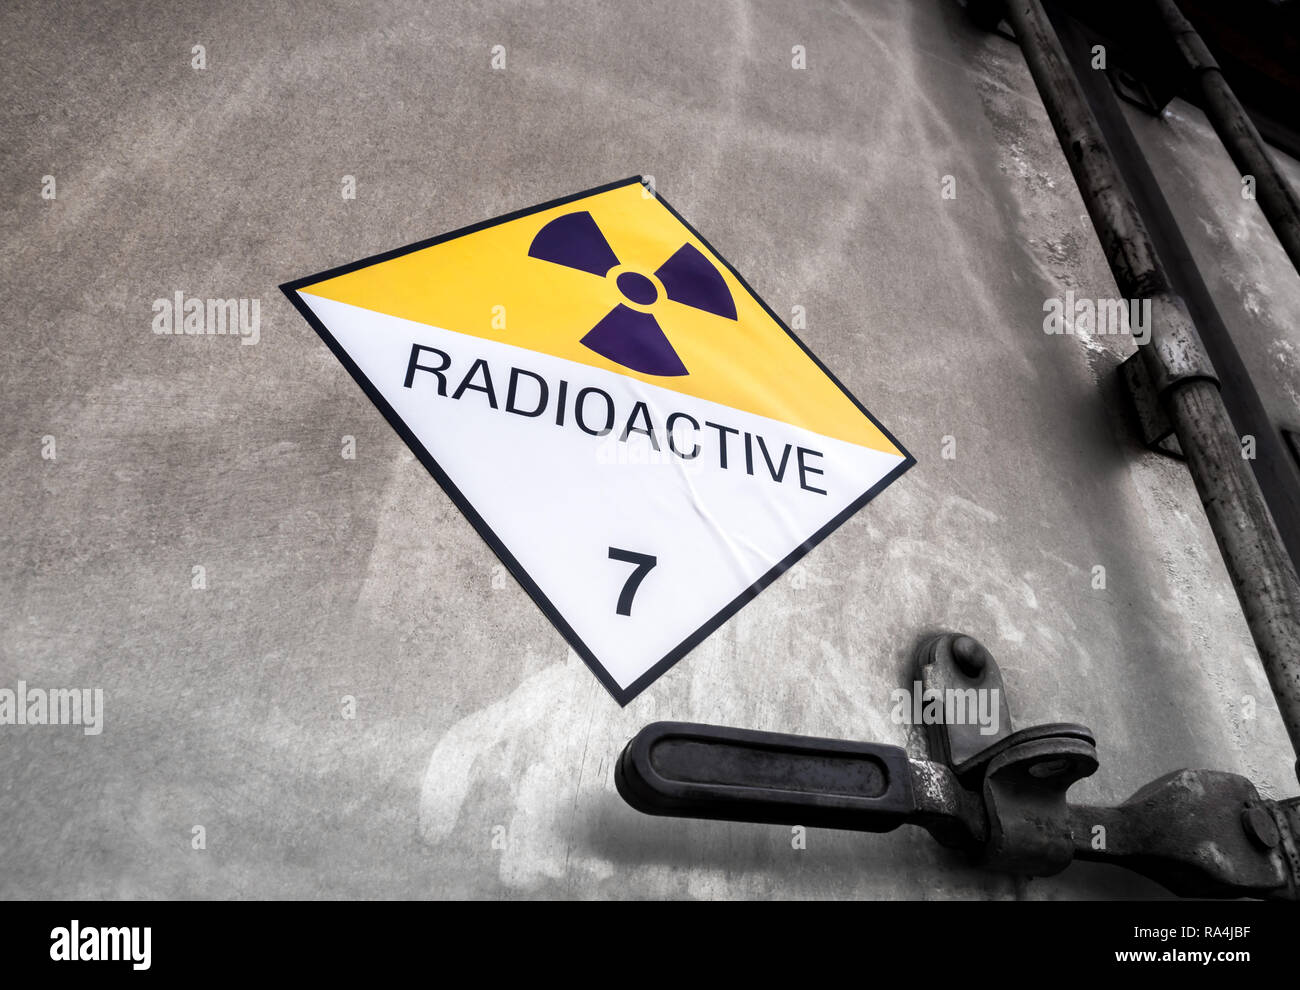 Radiation warning sign on the Hazardous materials transport label Class 7 at the aluminum container of transport truck - Stock Image